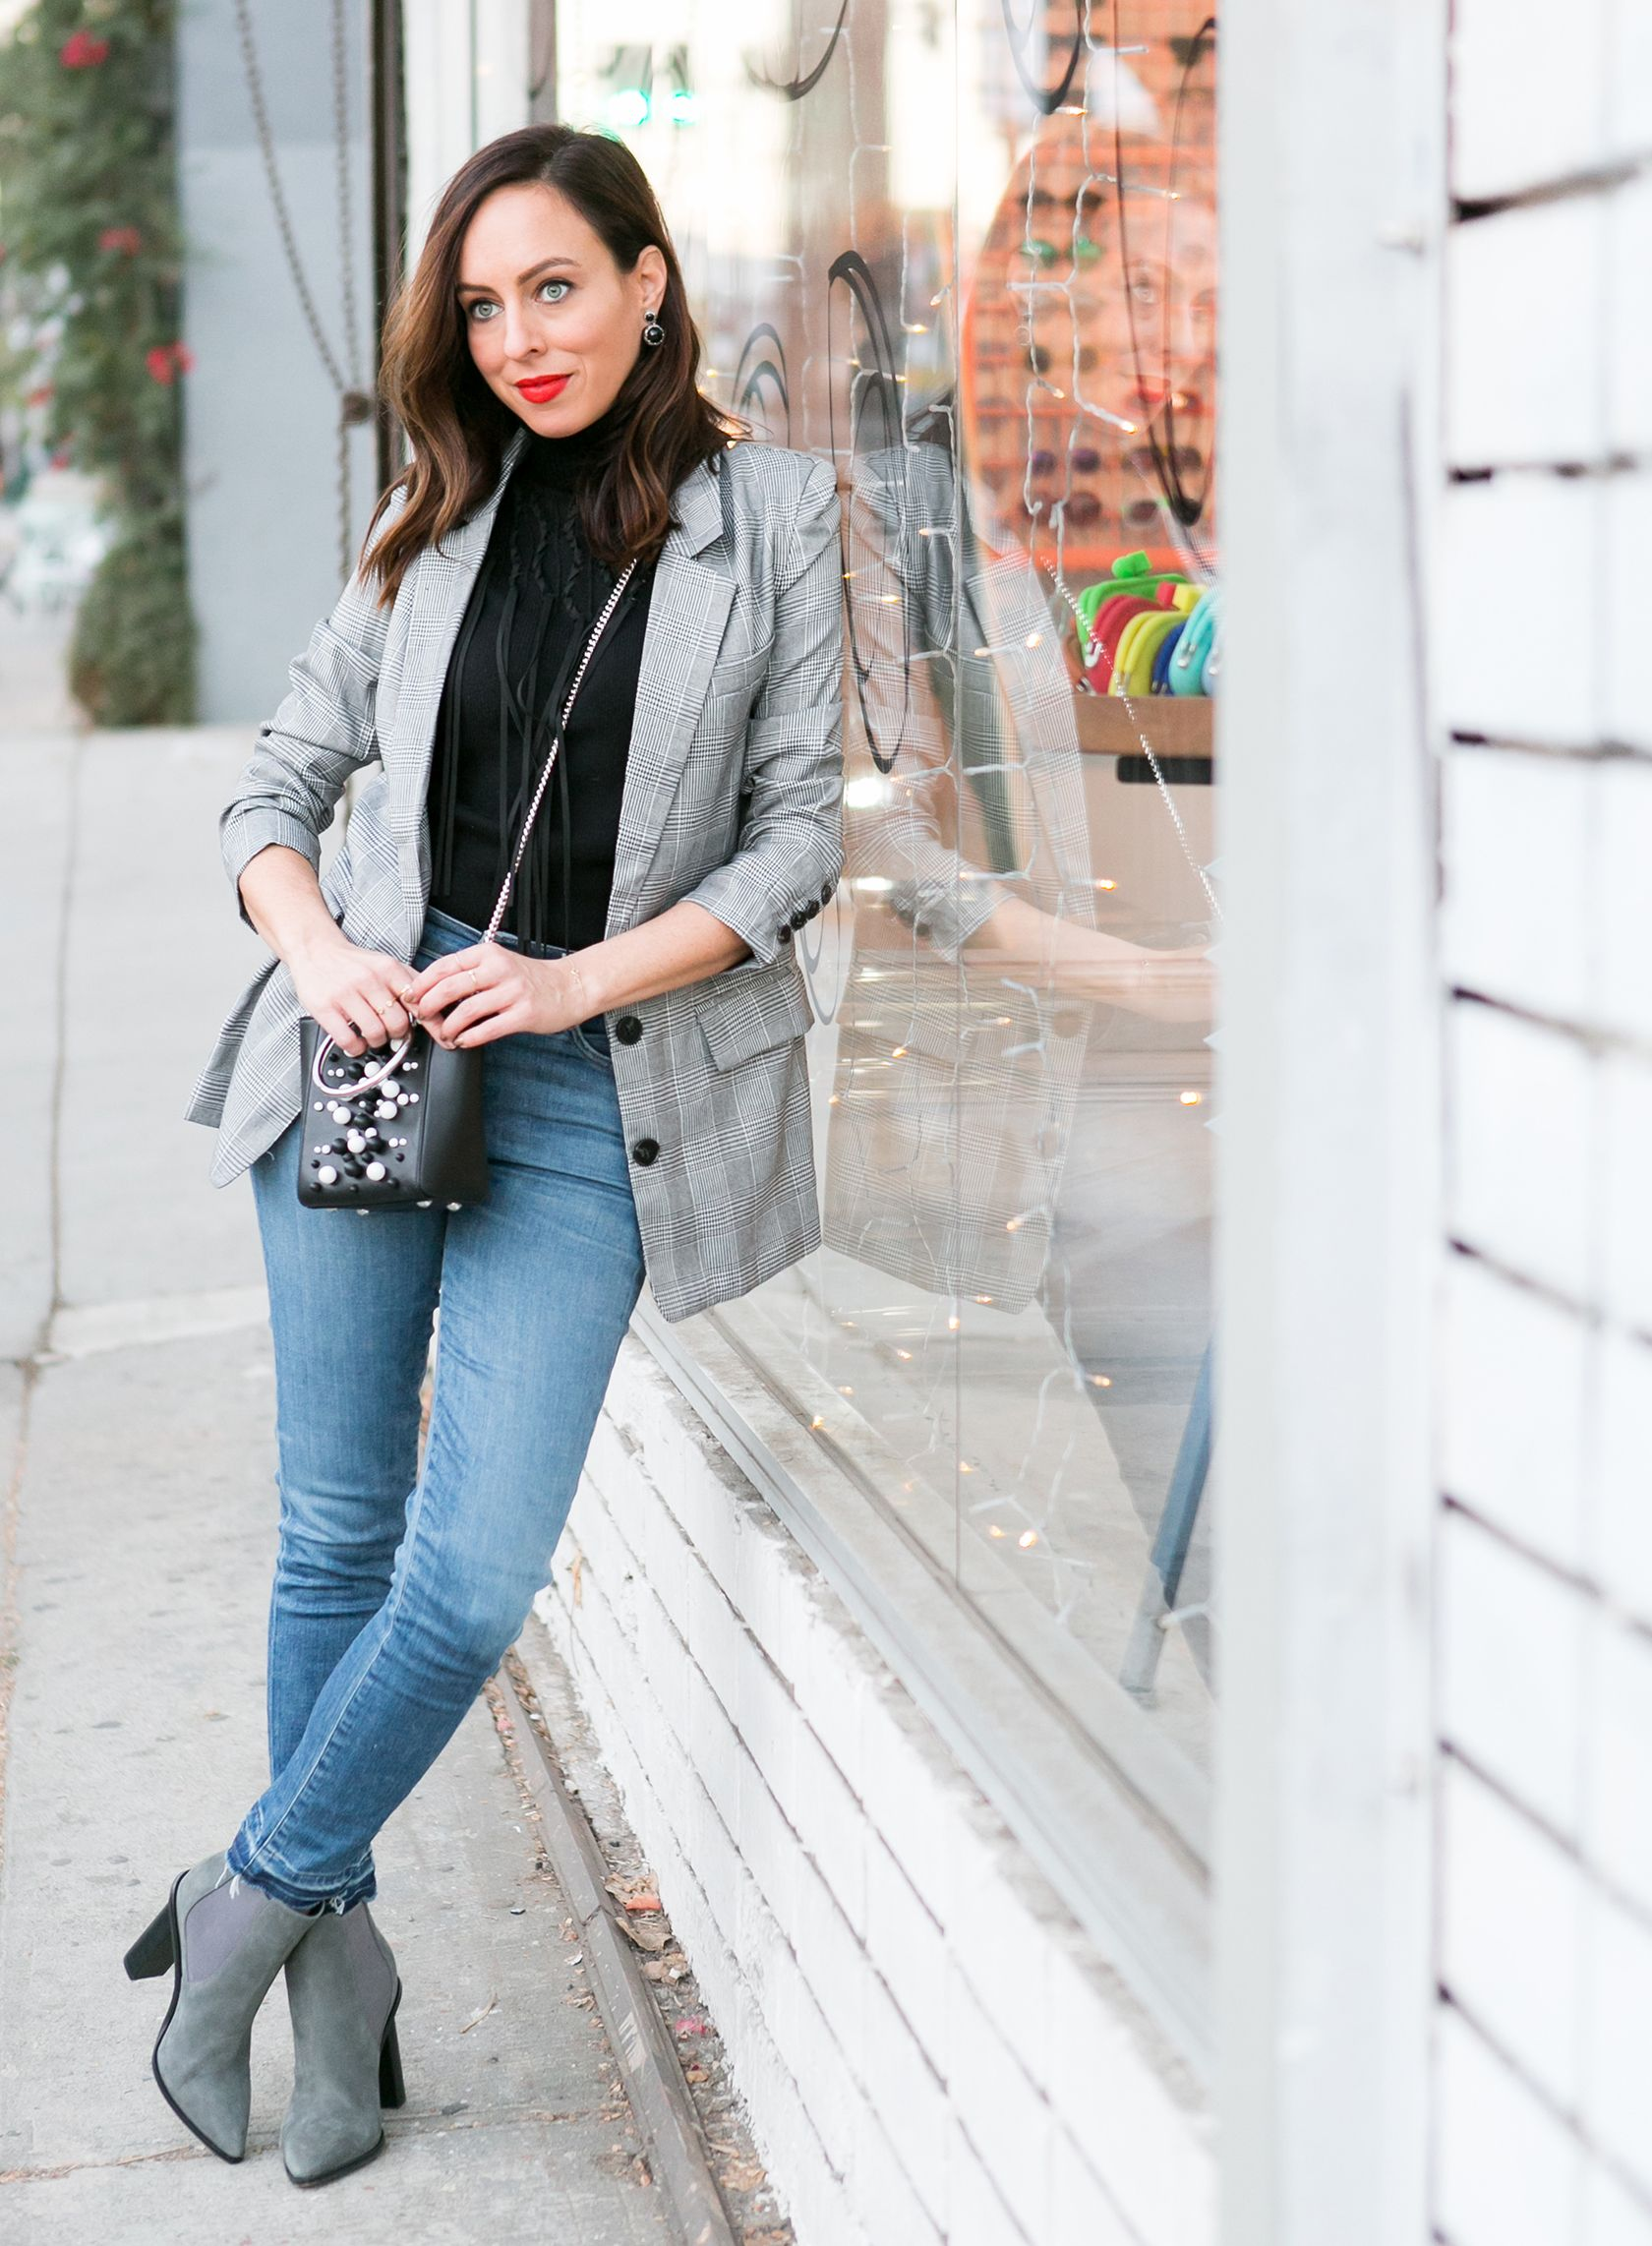 474b03320e Sydne Style shows how to wear the plaid blazer trend in shein checked  jacket  turtleneck  plaid  blazer  jeans  casualoutfits  booties  black   gray